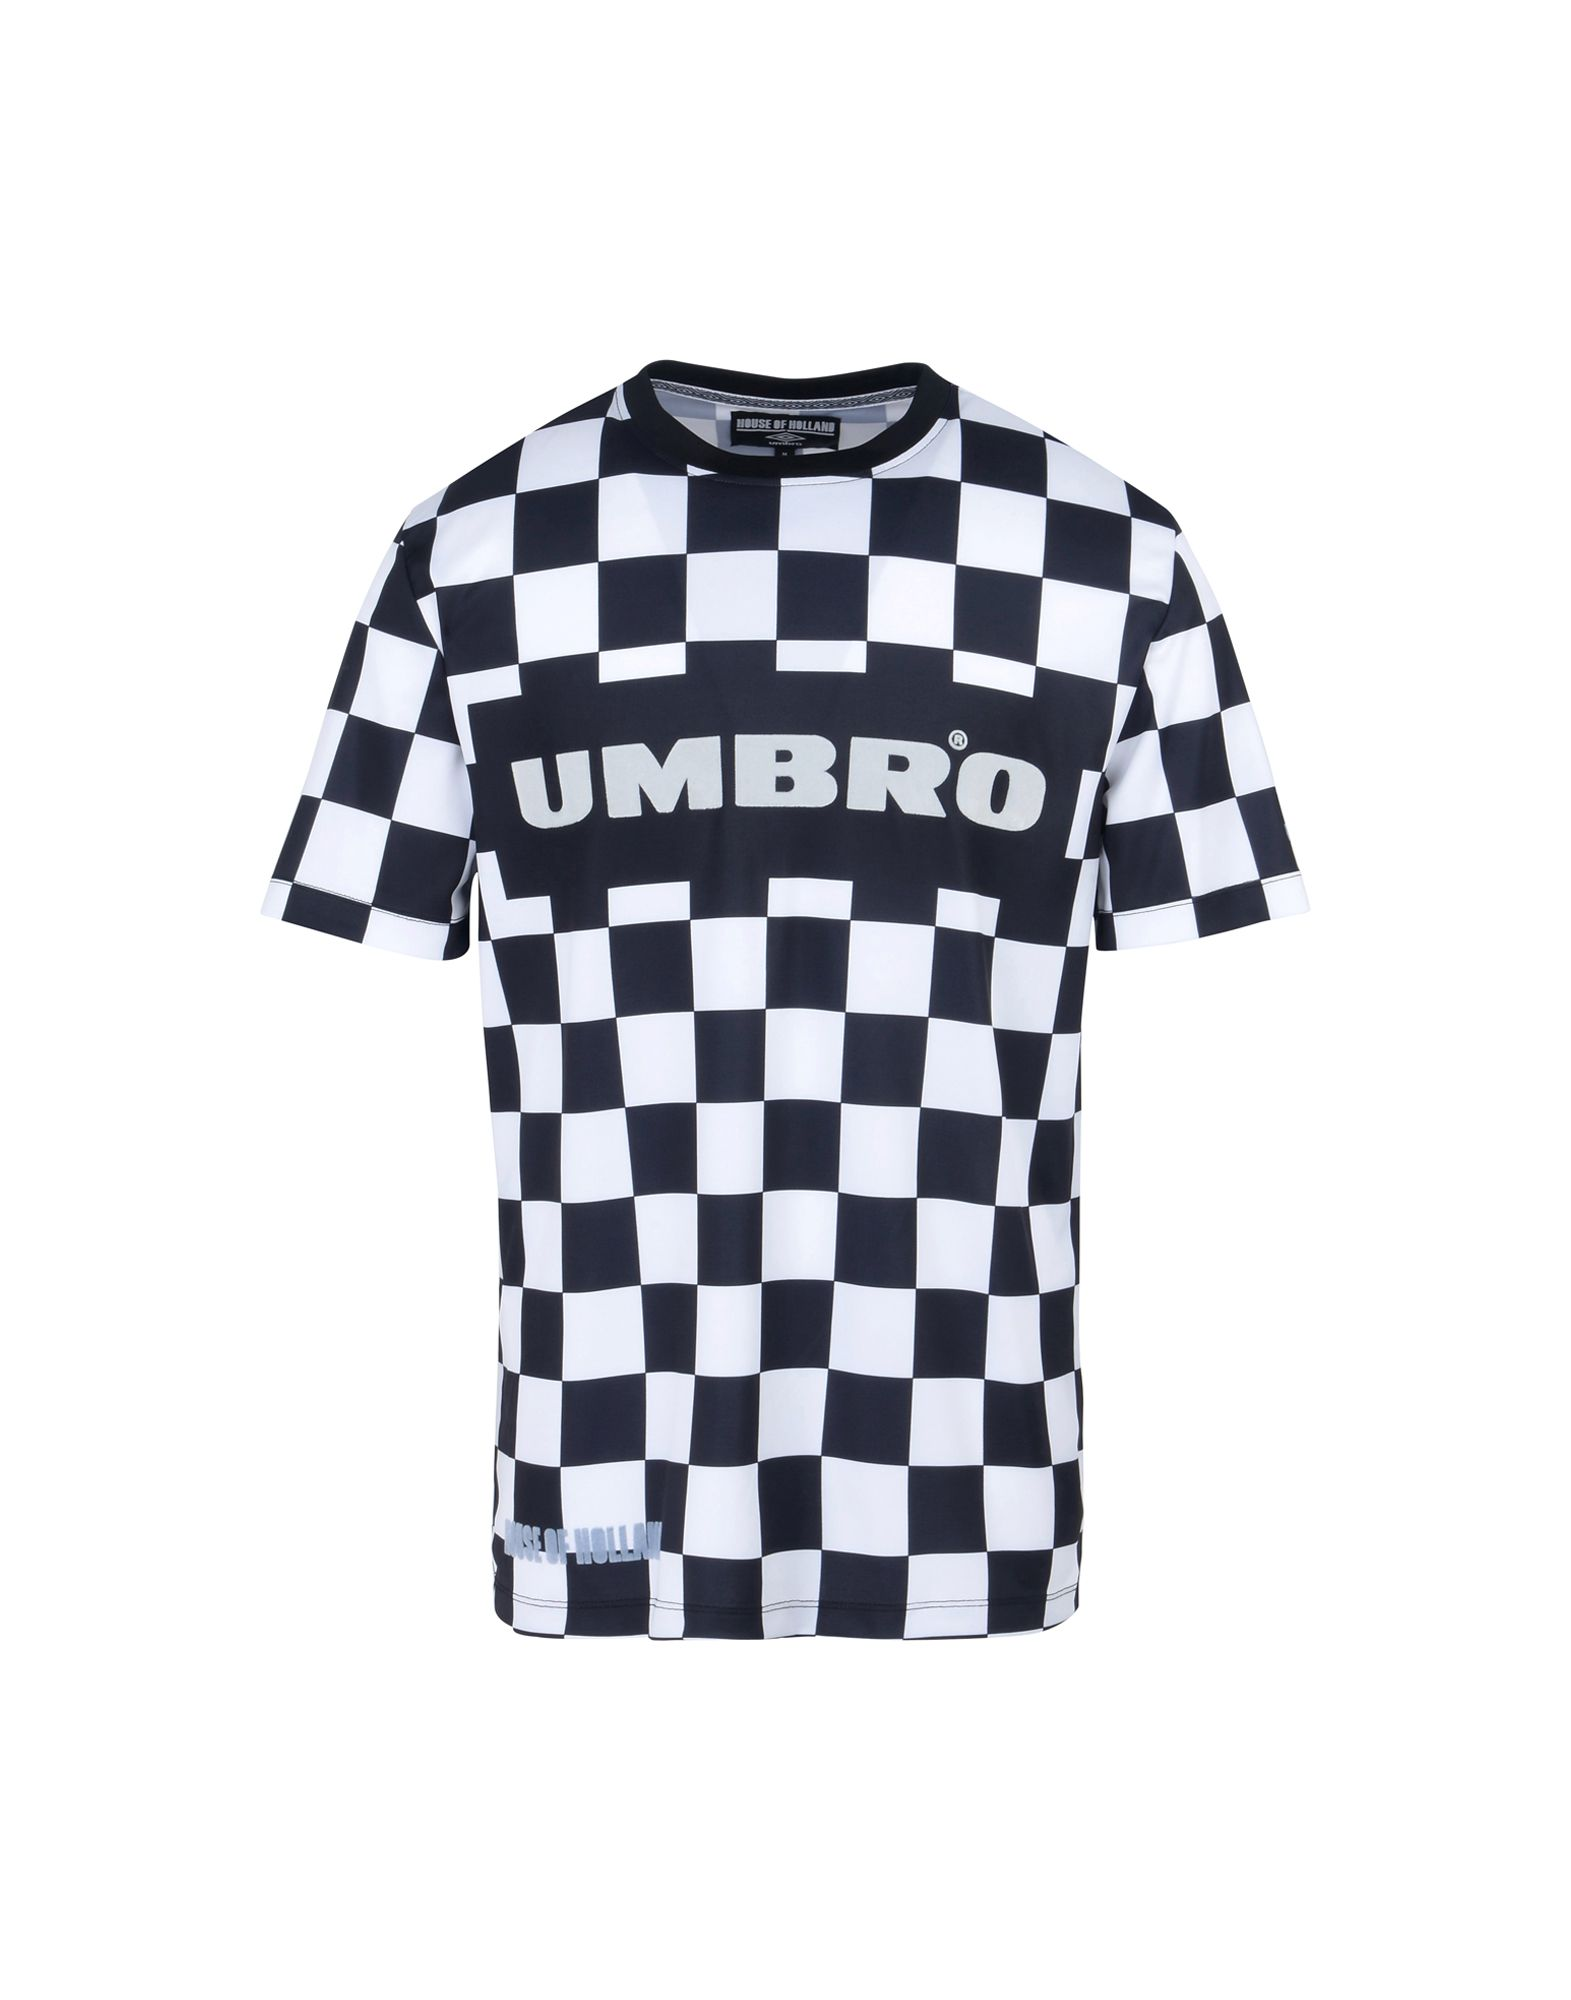 UMBRO x HOUSE OF HOLLAND Футболка лампочка филипс 007054 b1s 35w e1 04j dot 9285 141 294